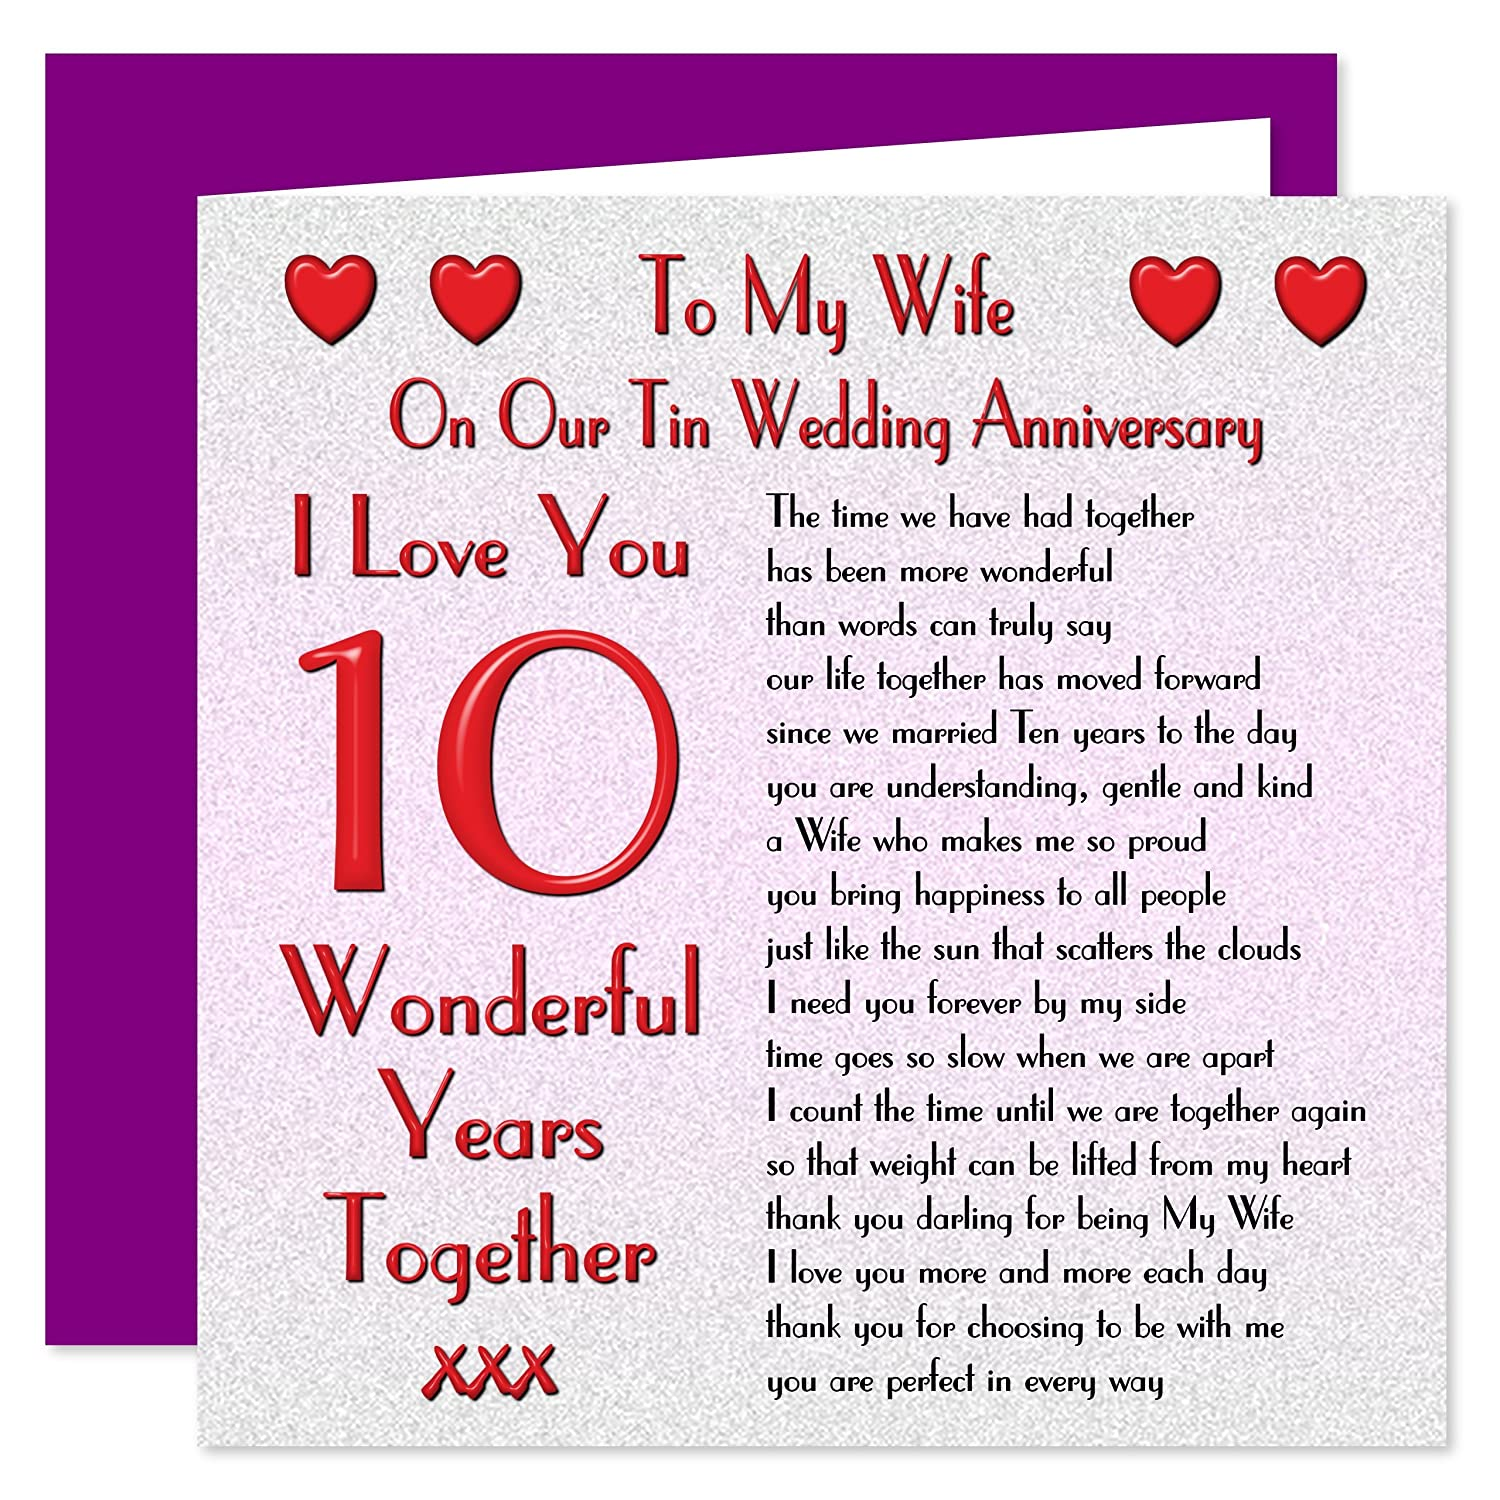 My Wife 10th Wedding Anniversary Card - On Our Tin Anniversary - 10 Years -  Sentimental Verse I Love You